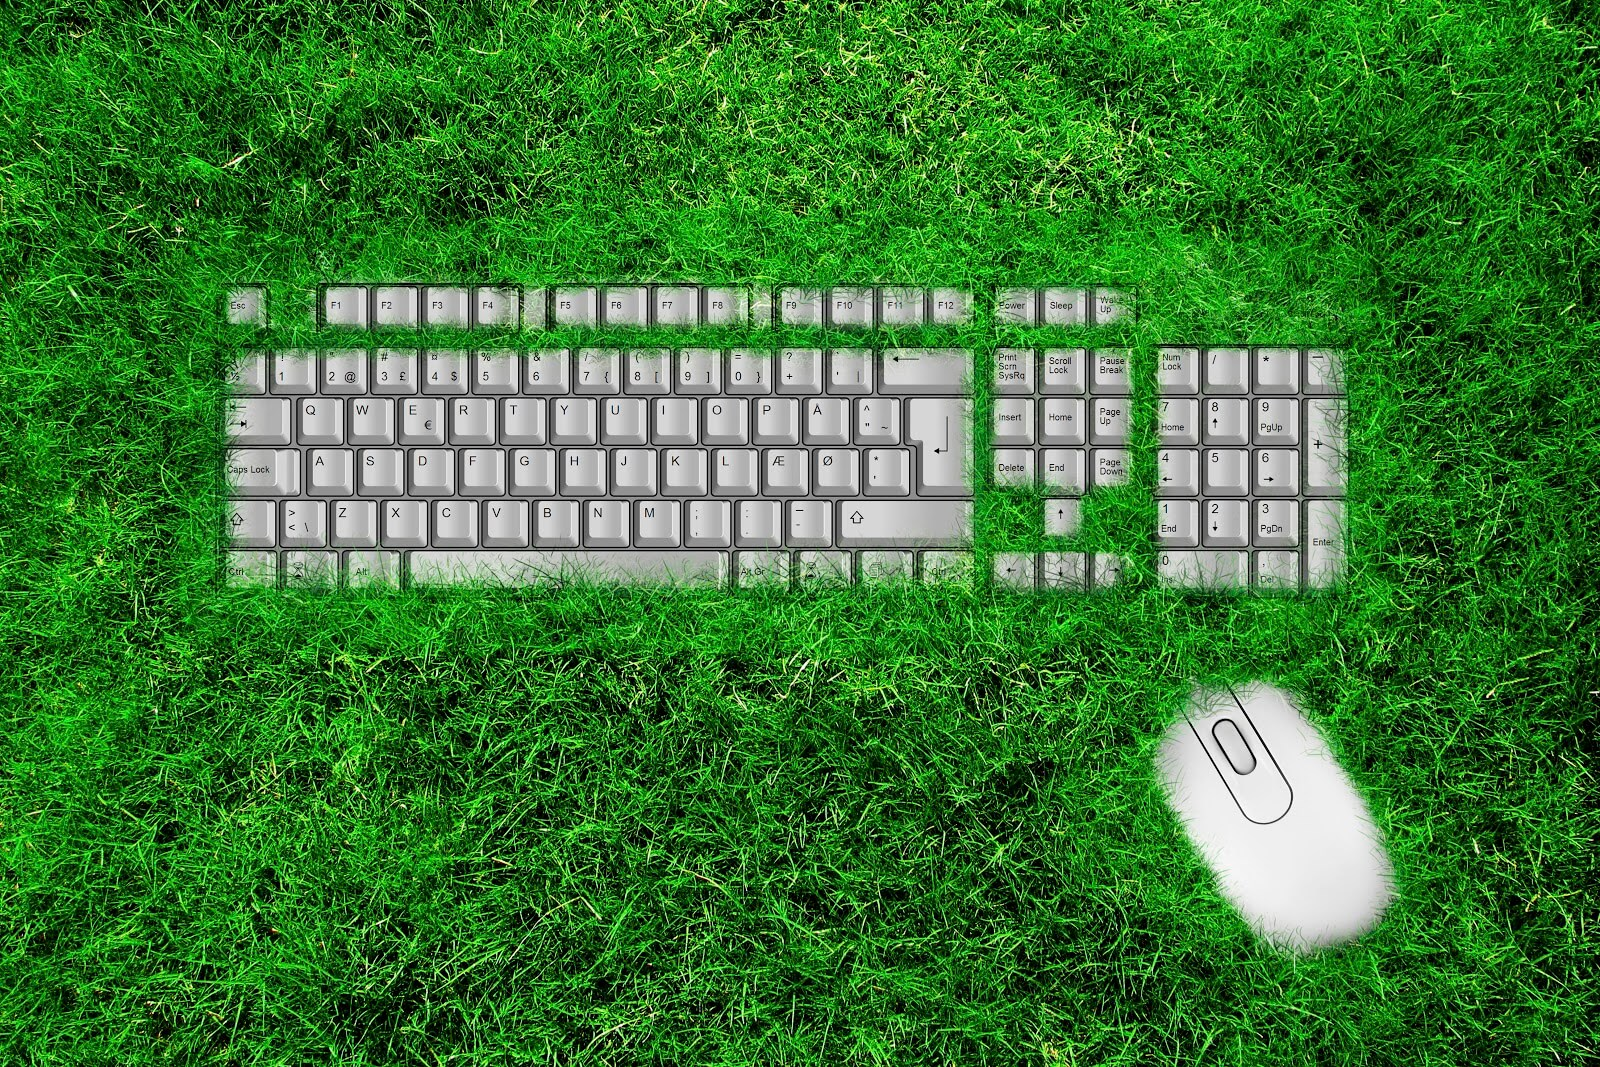 a keyboard with grass covering it